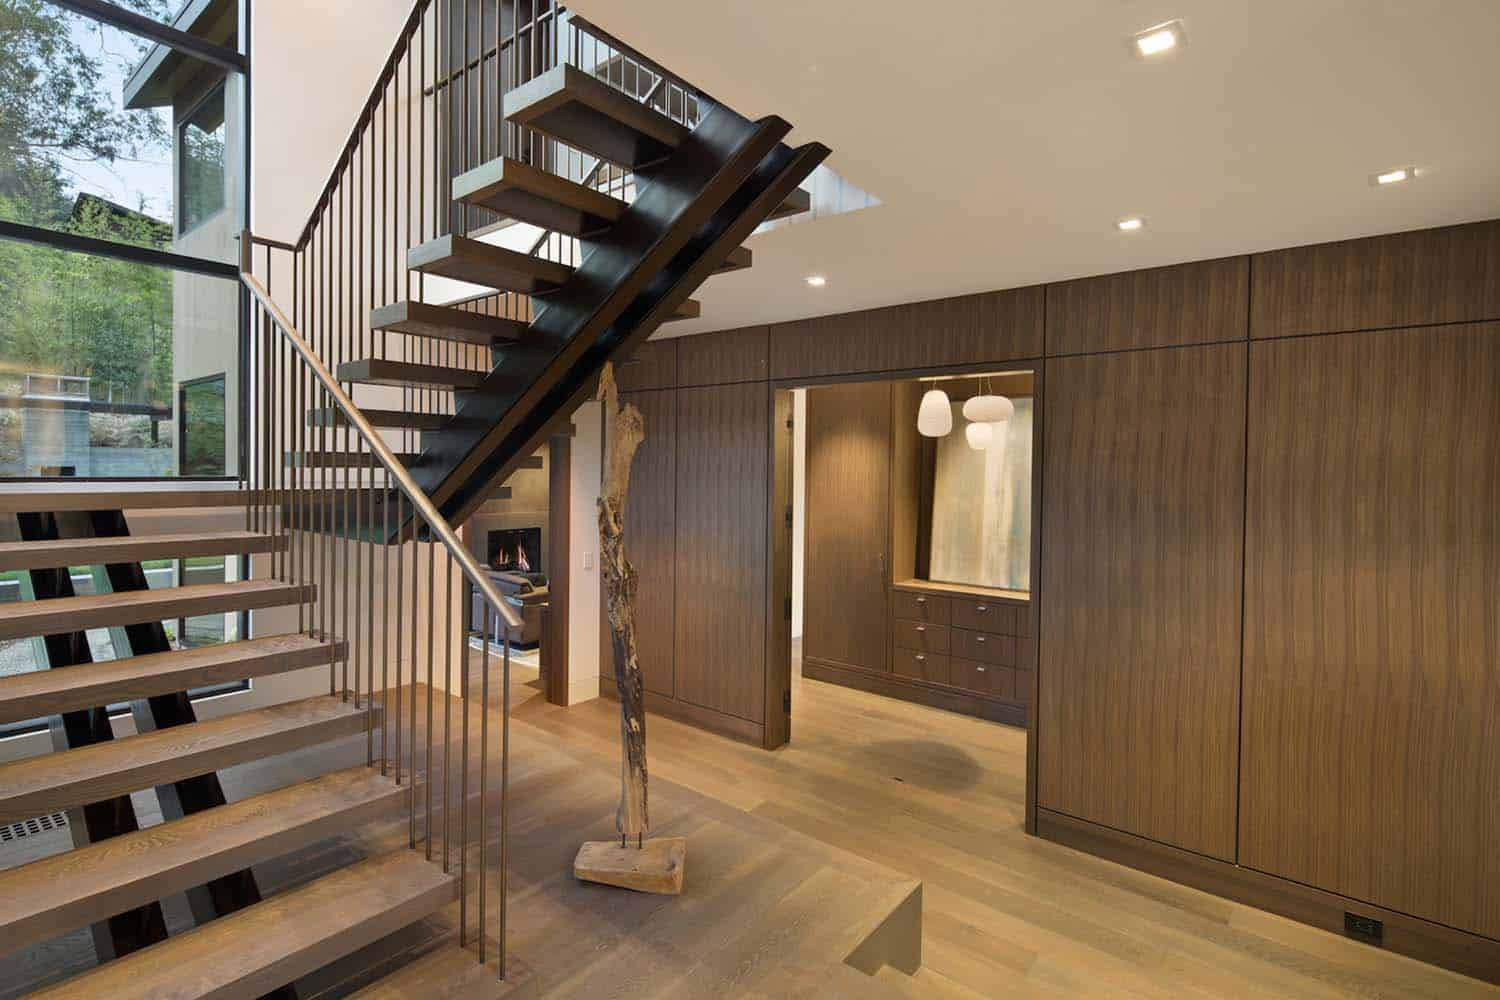 Contemporary Home Design-Butler Armsden Architects-08-1 Kindesign